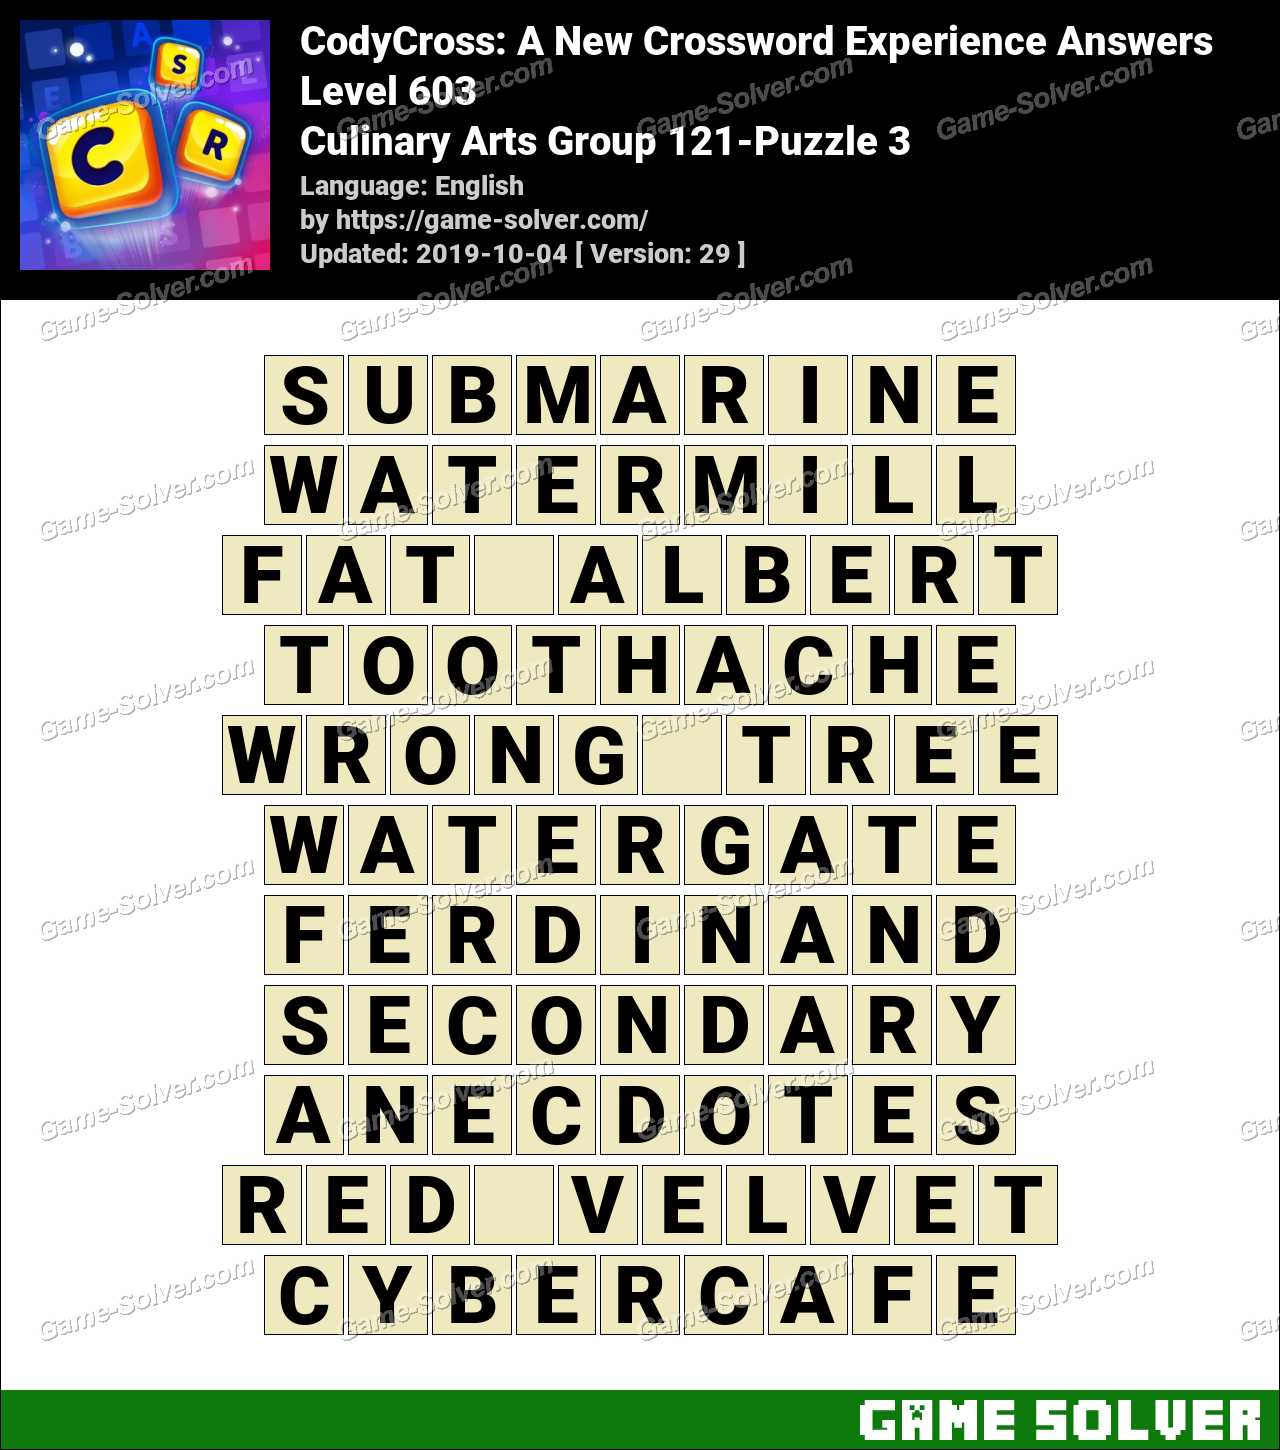 CodyCross Culinary Arts Group 121-Puzzle 3 Answers